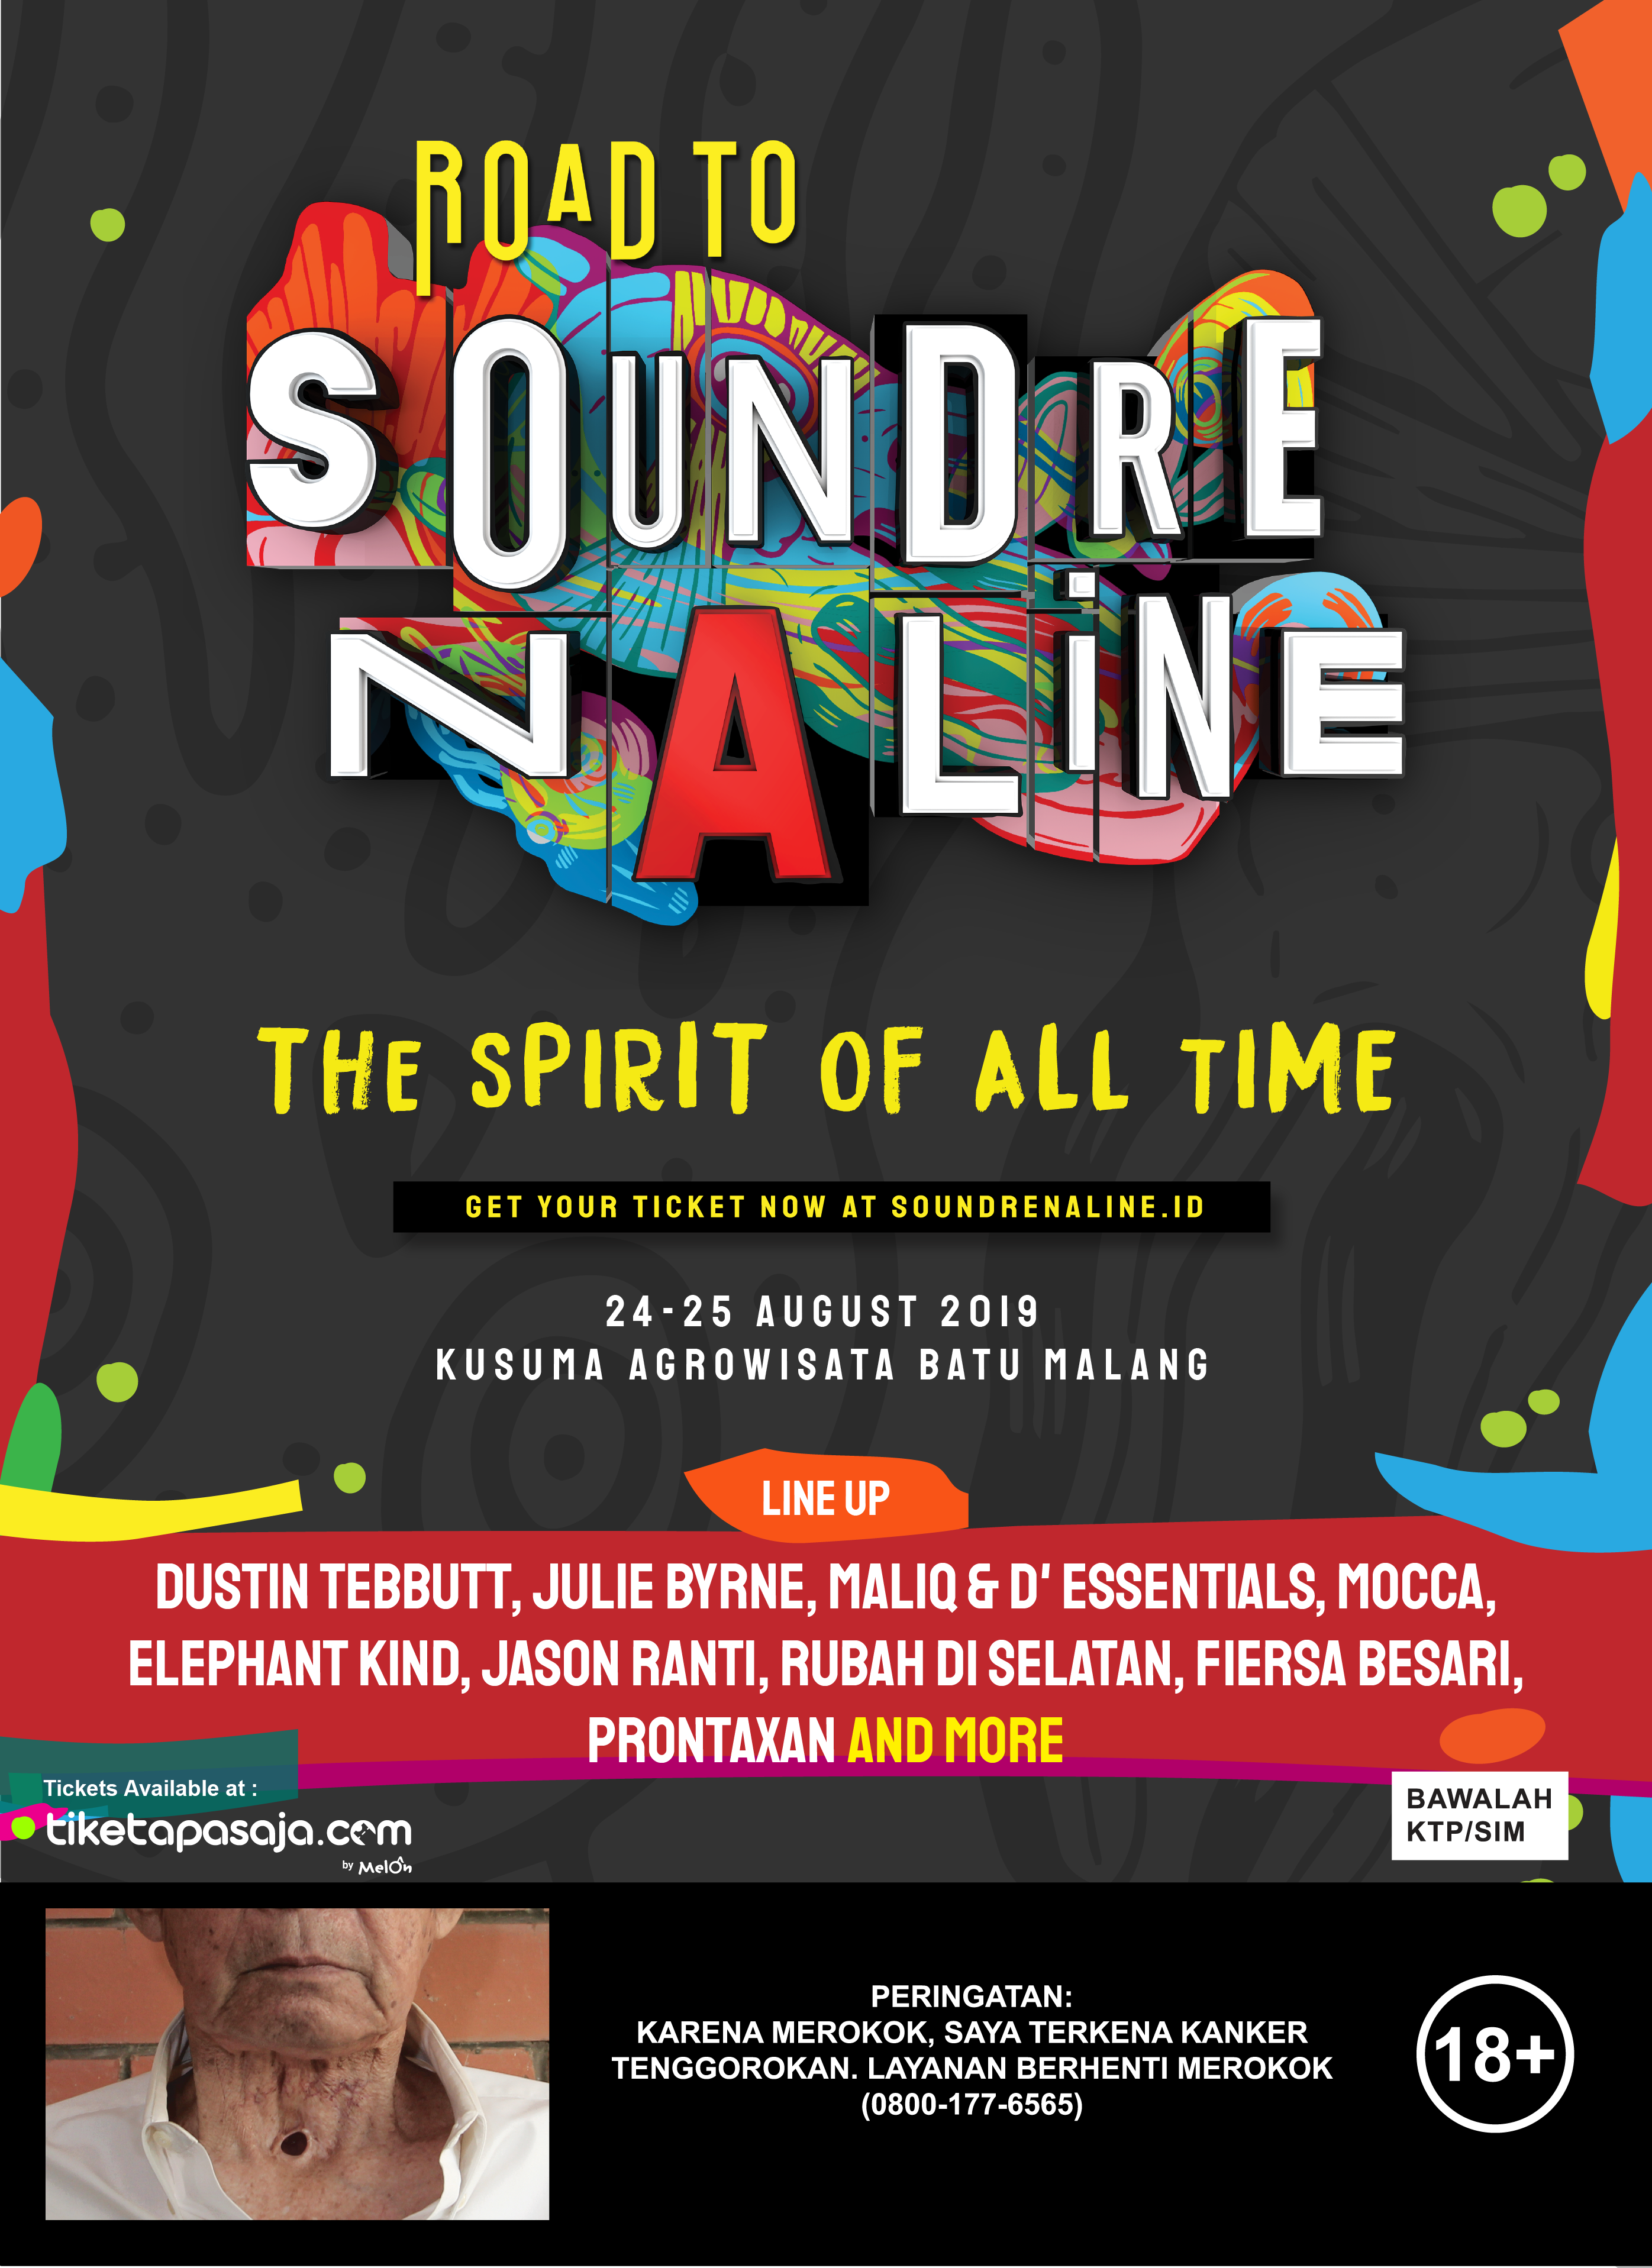 Road To Soundrenaline 2019 - MALANG